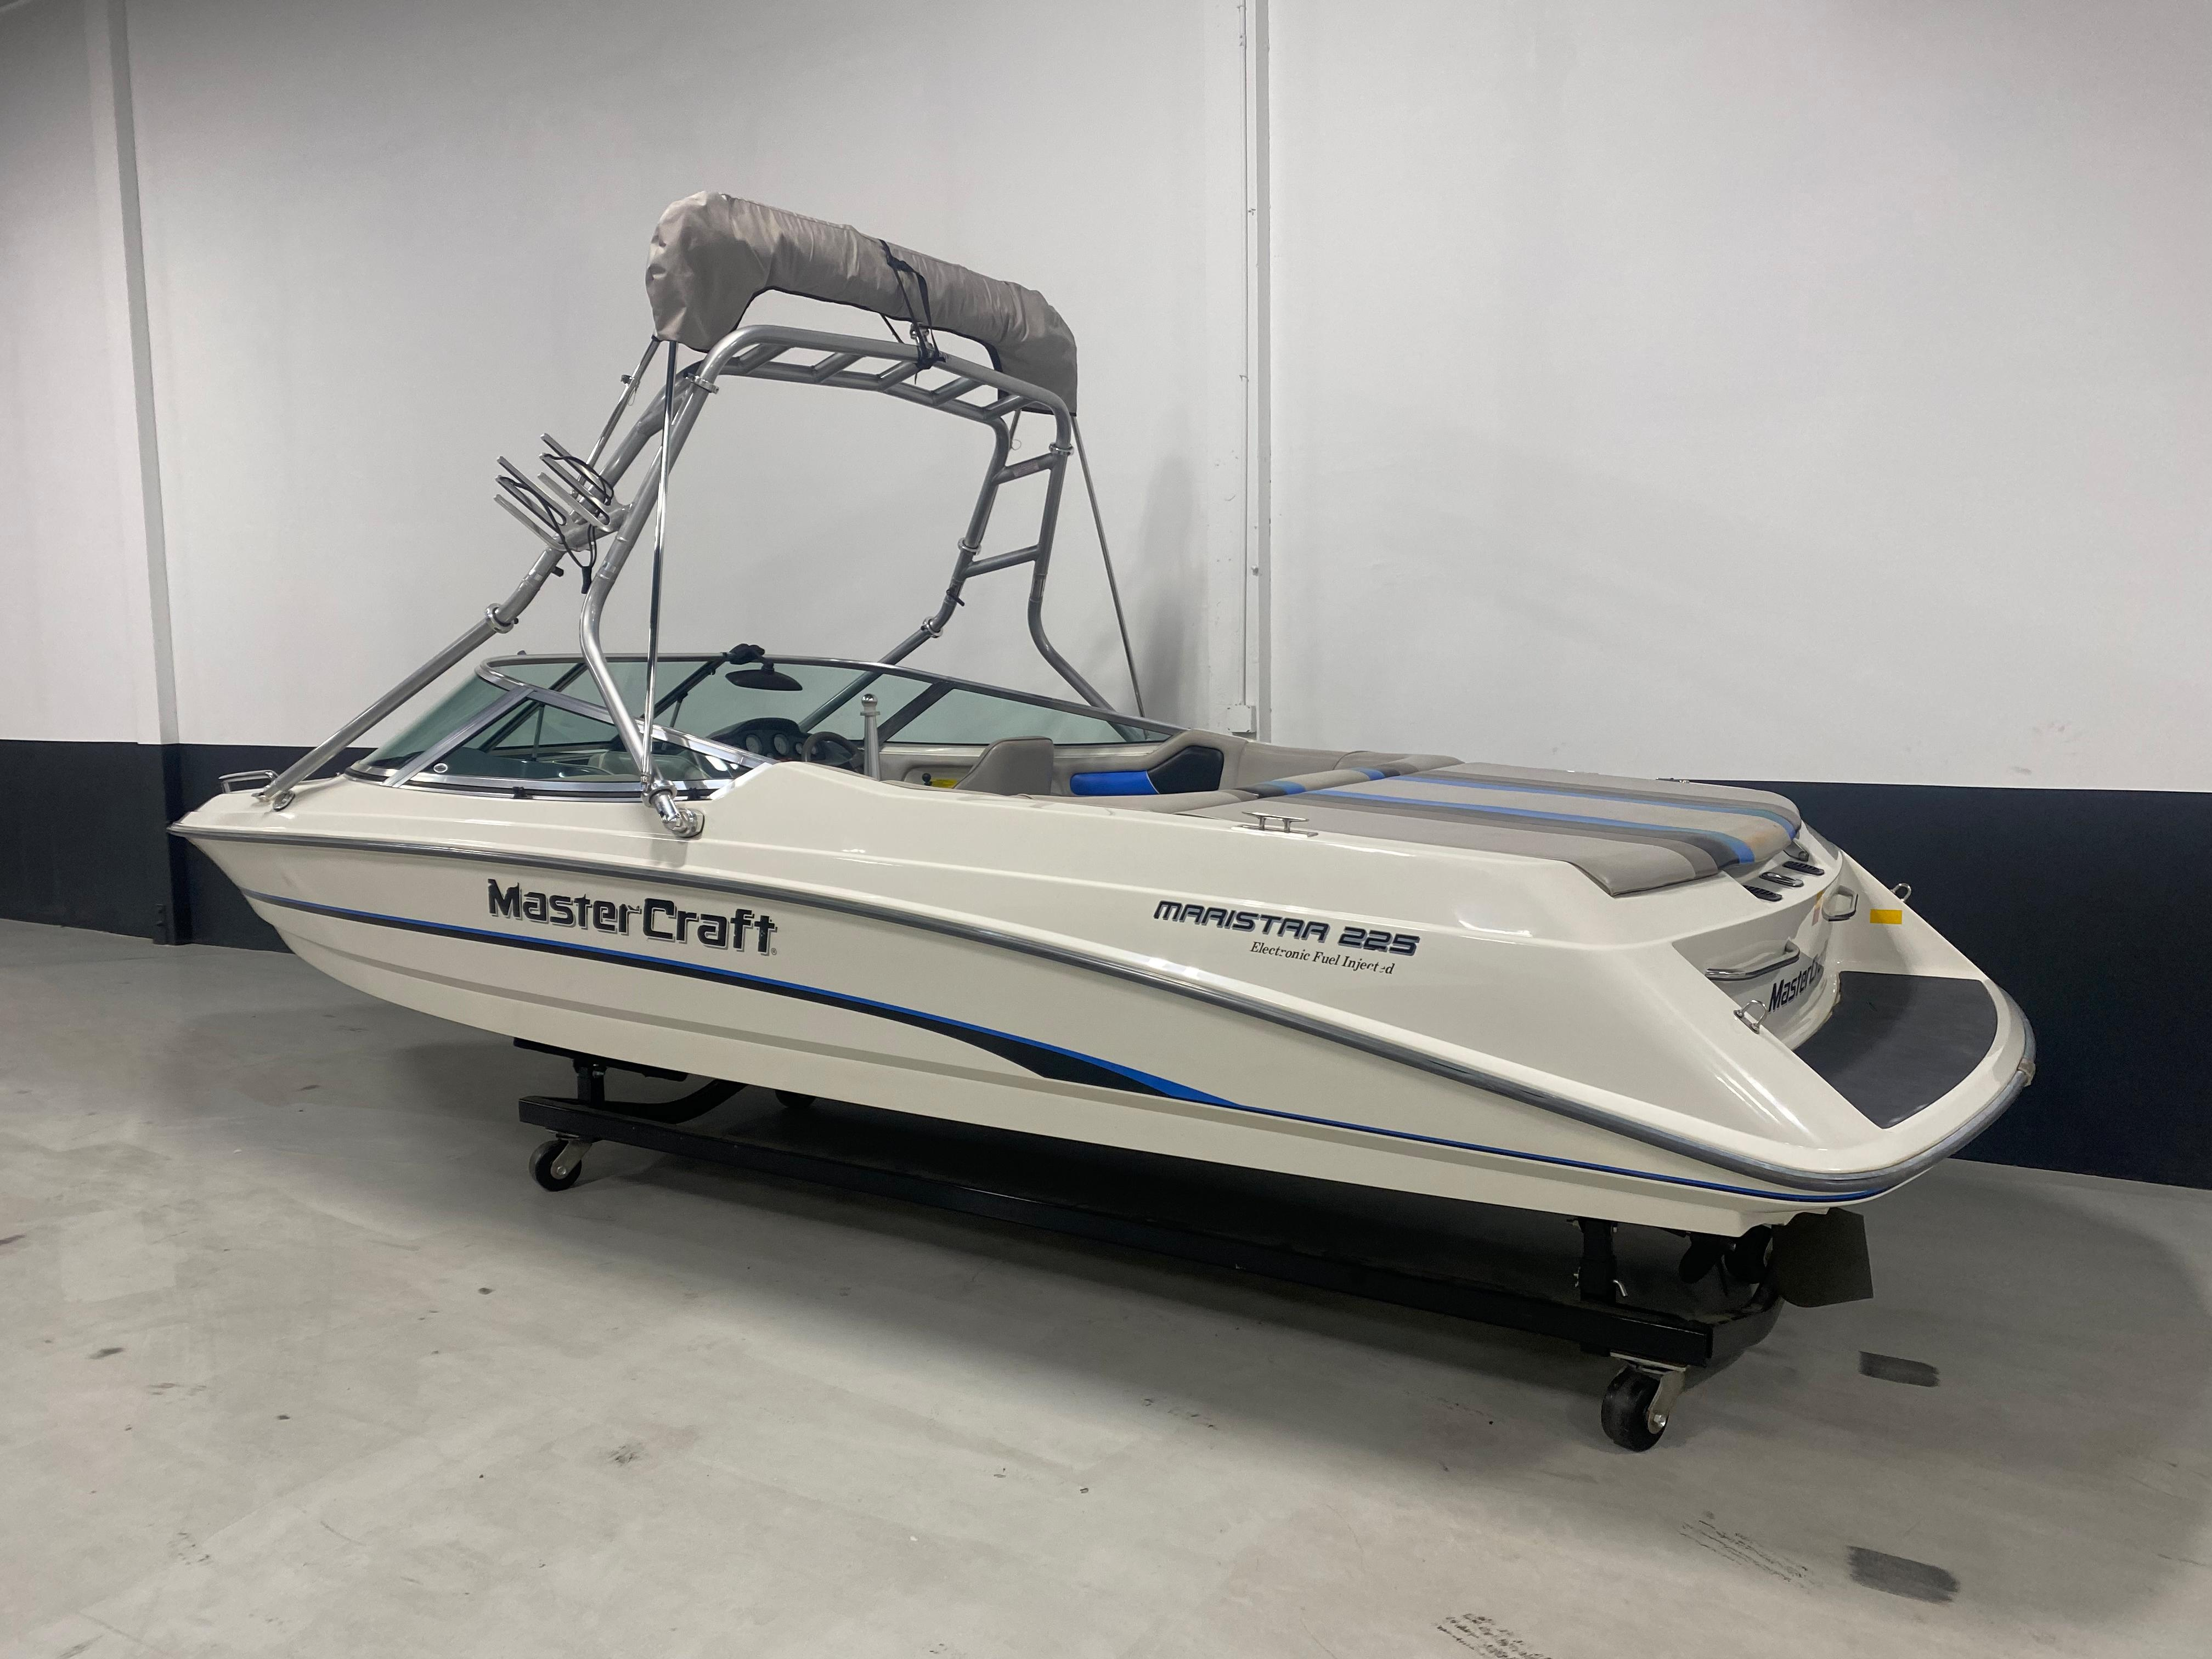 1995 Mastercraft 225 VRS Maristar #TBJ3DW inventory image at Sun Country Inland in Irvine